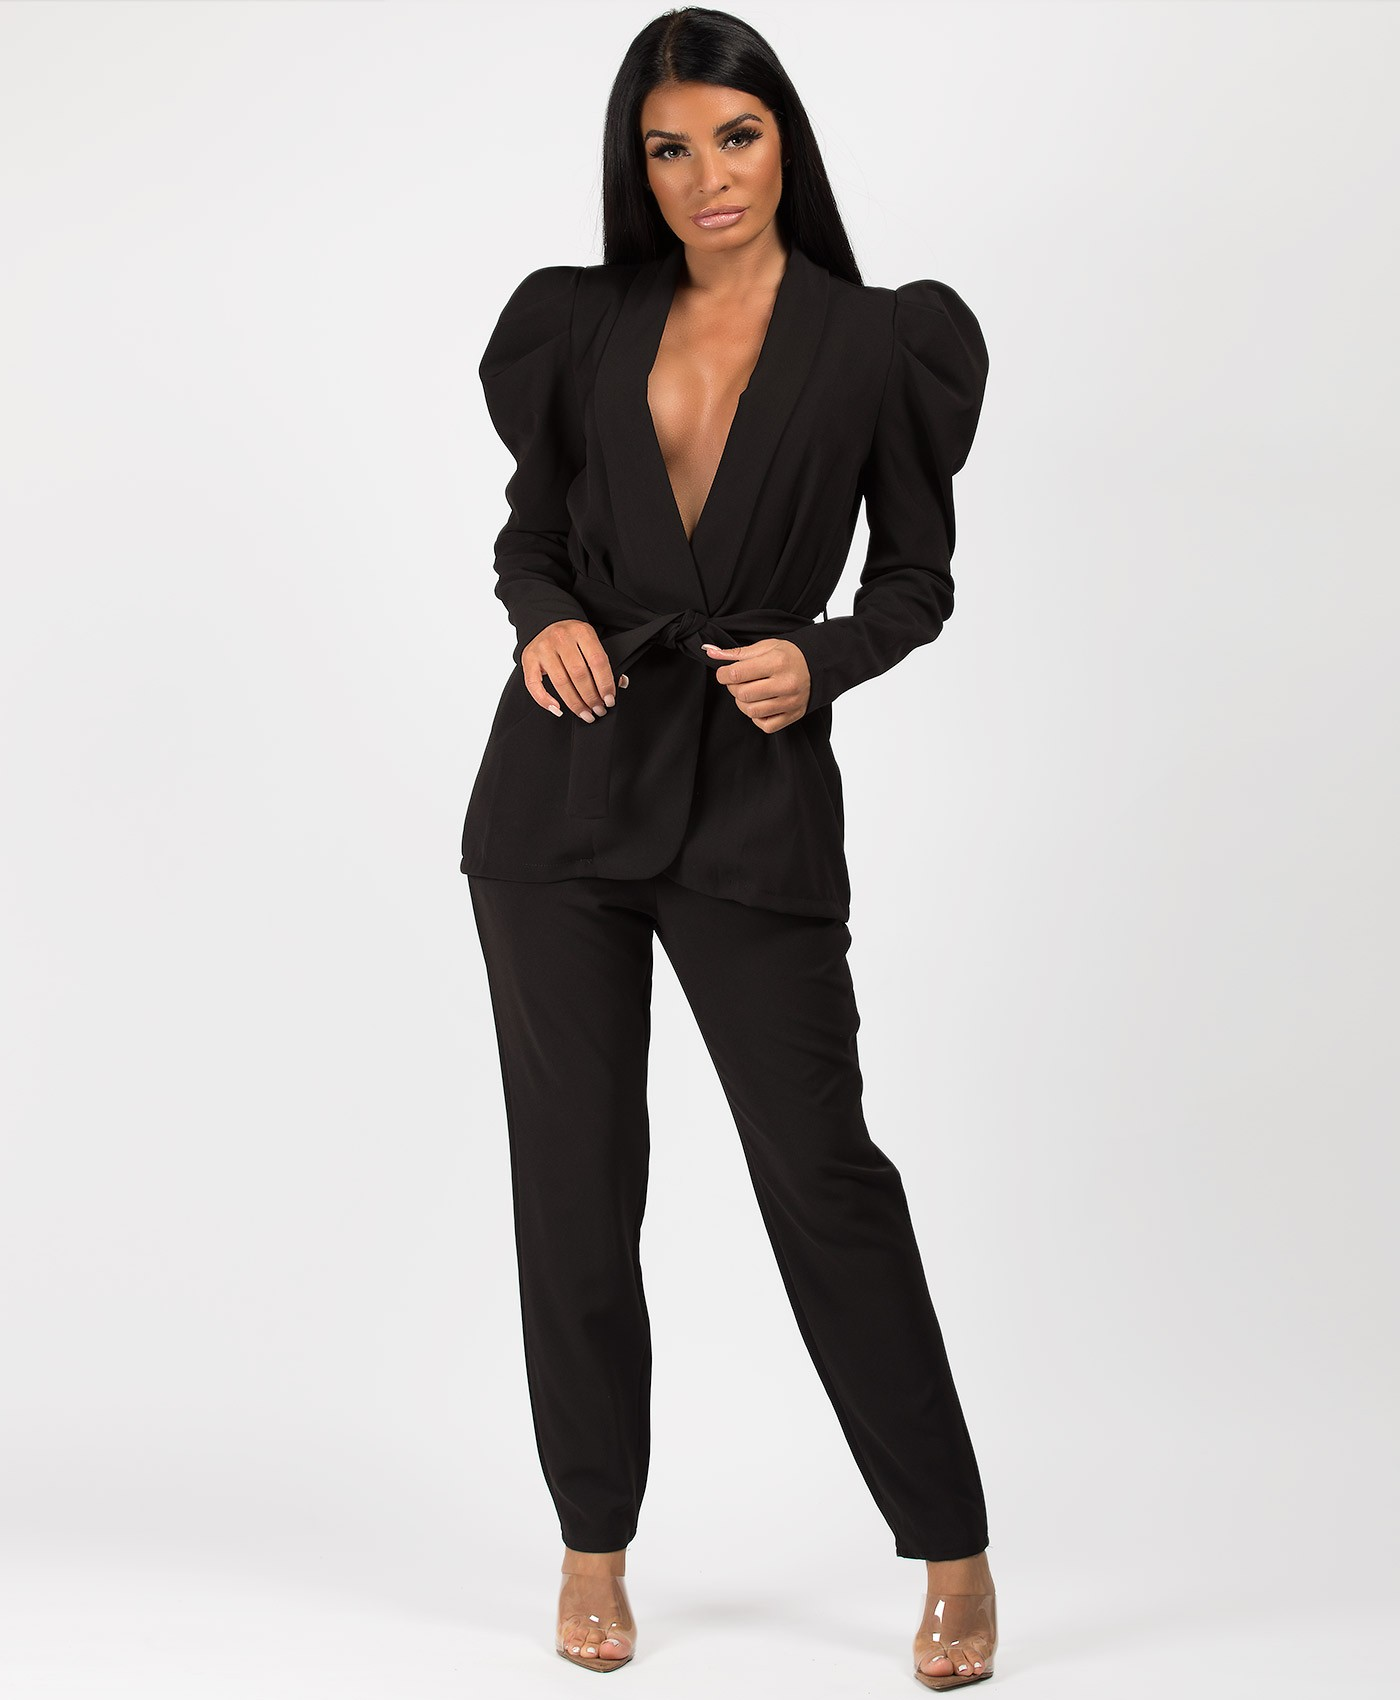 Black Tie Blazer And Trouser Suit Co Ord Set